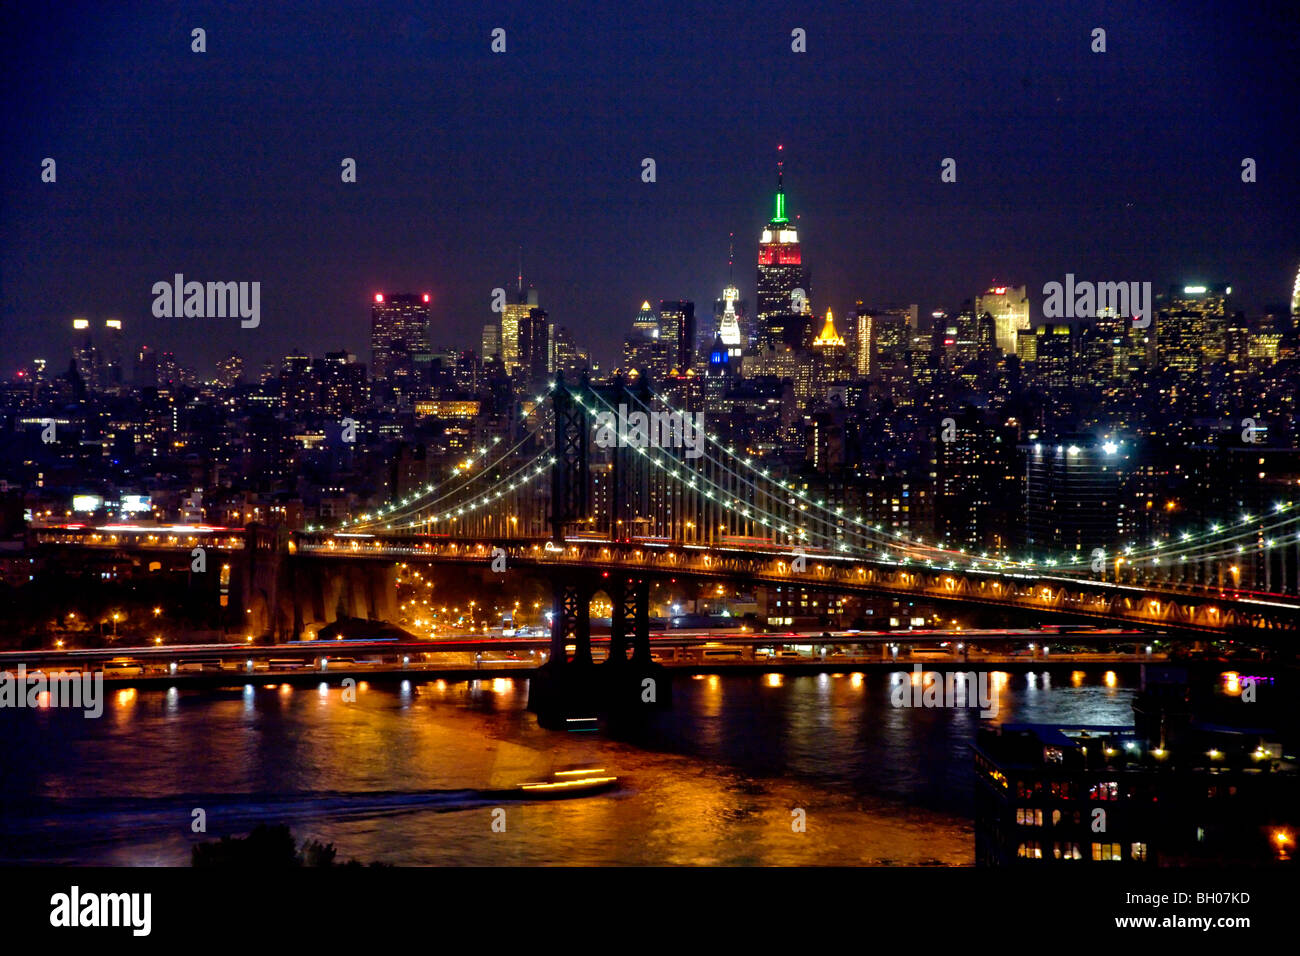 The lights of midtown Manhattan, NY City, sparkle at twilight beyond the Manhattan Bridge across the East River. - Stock Image